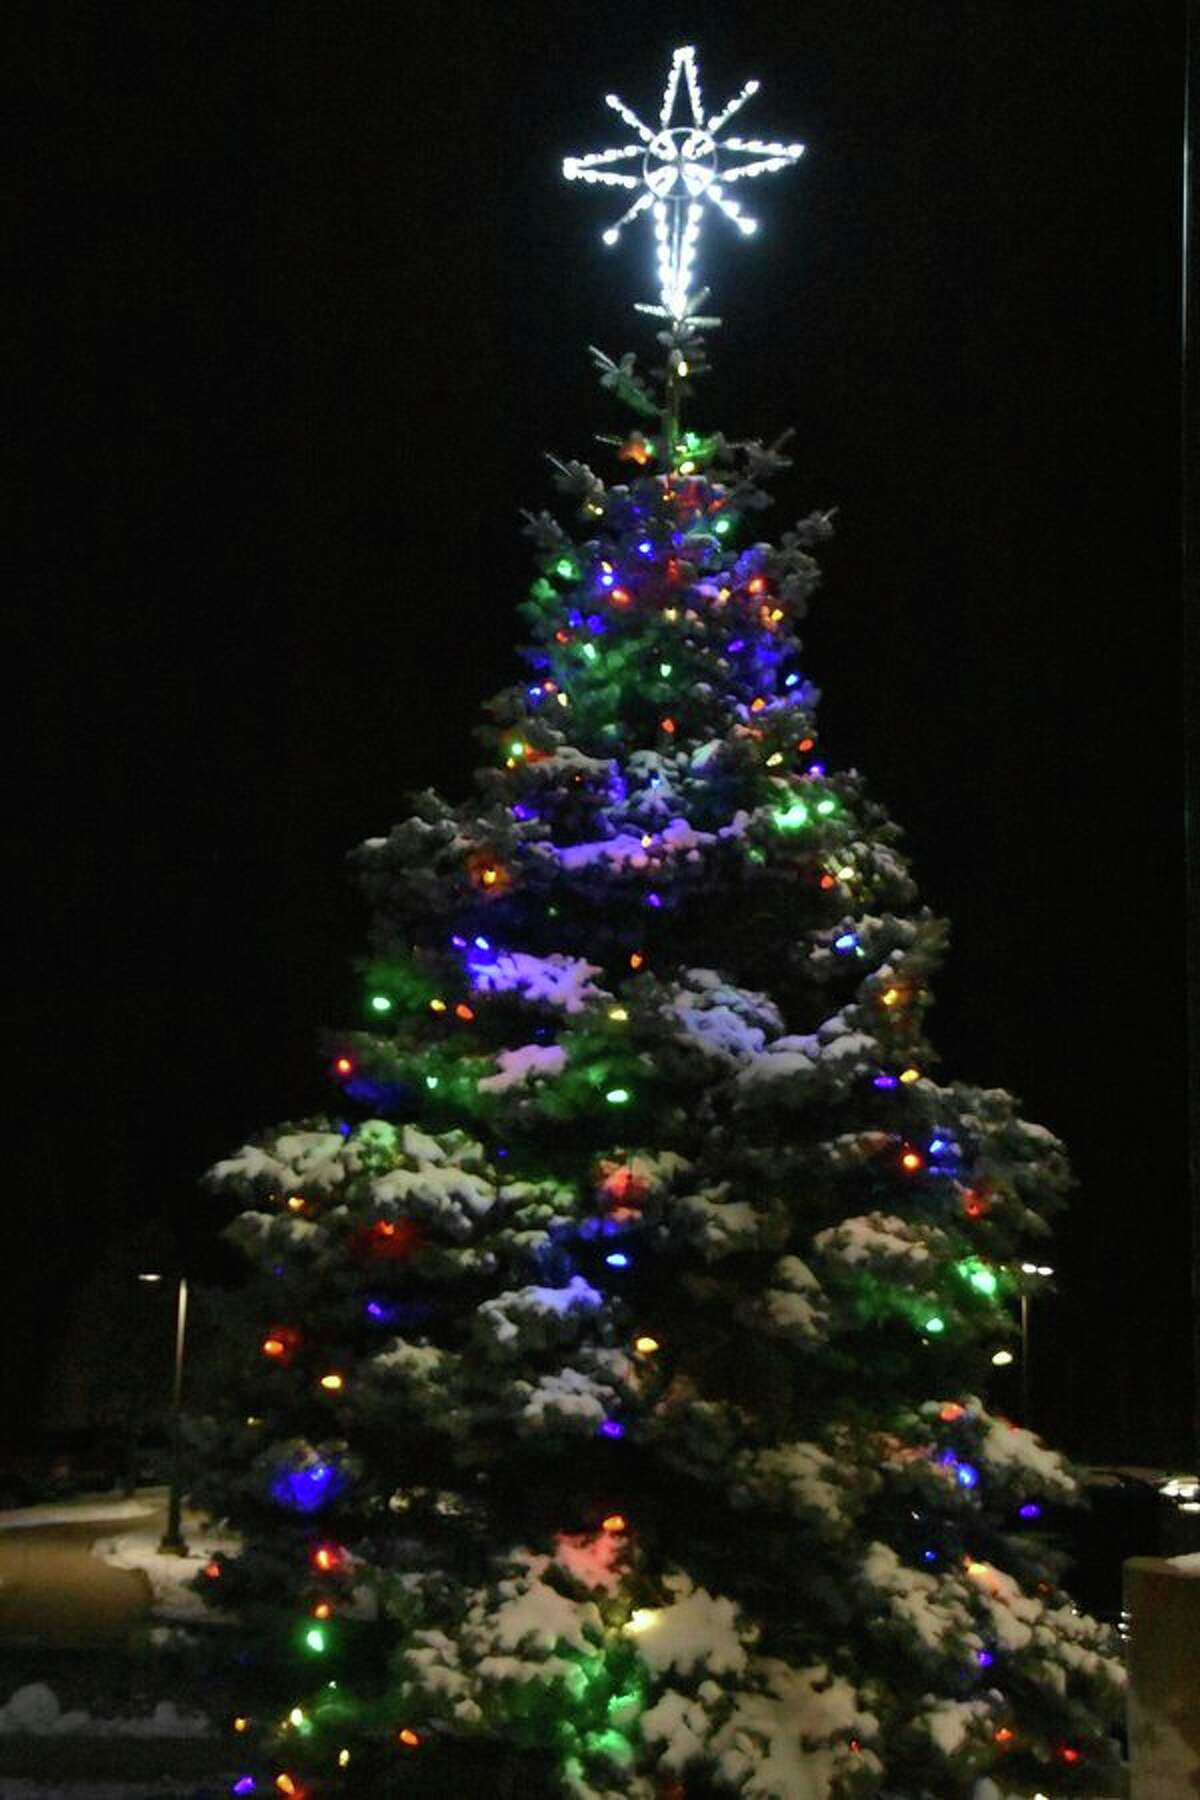 Pictured is one of the 10 Love Light Trees that illuminated the grounds of MidMichigan Medical Center â€